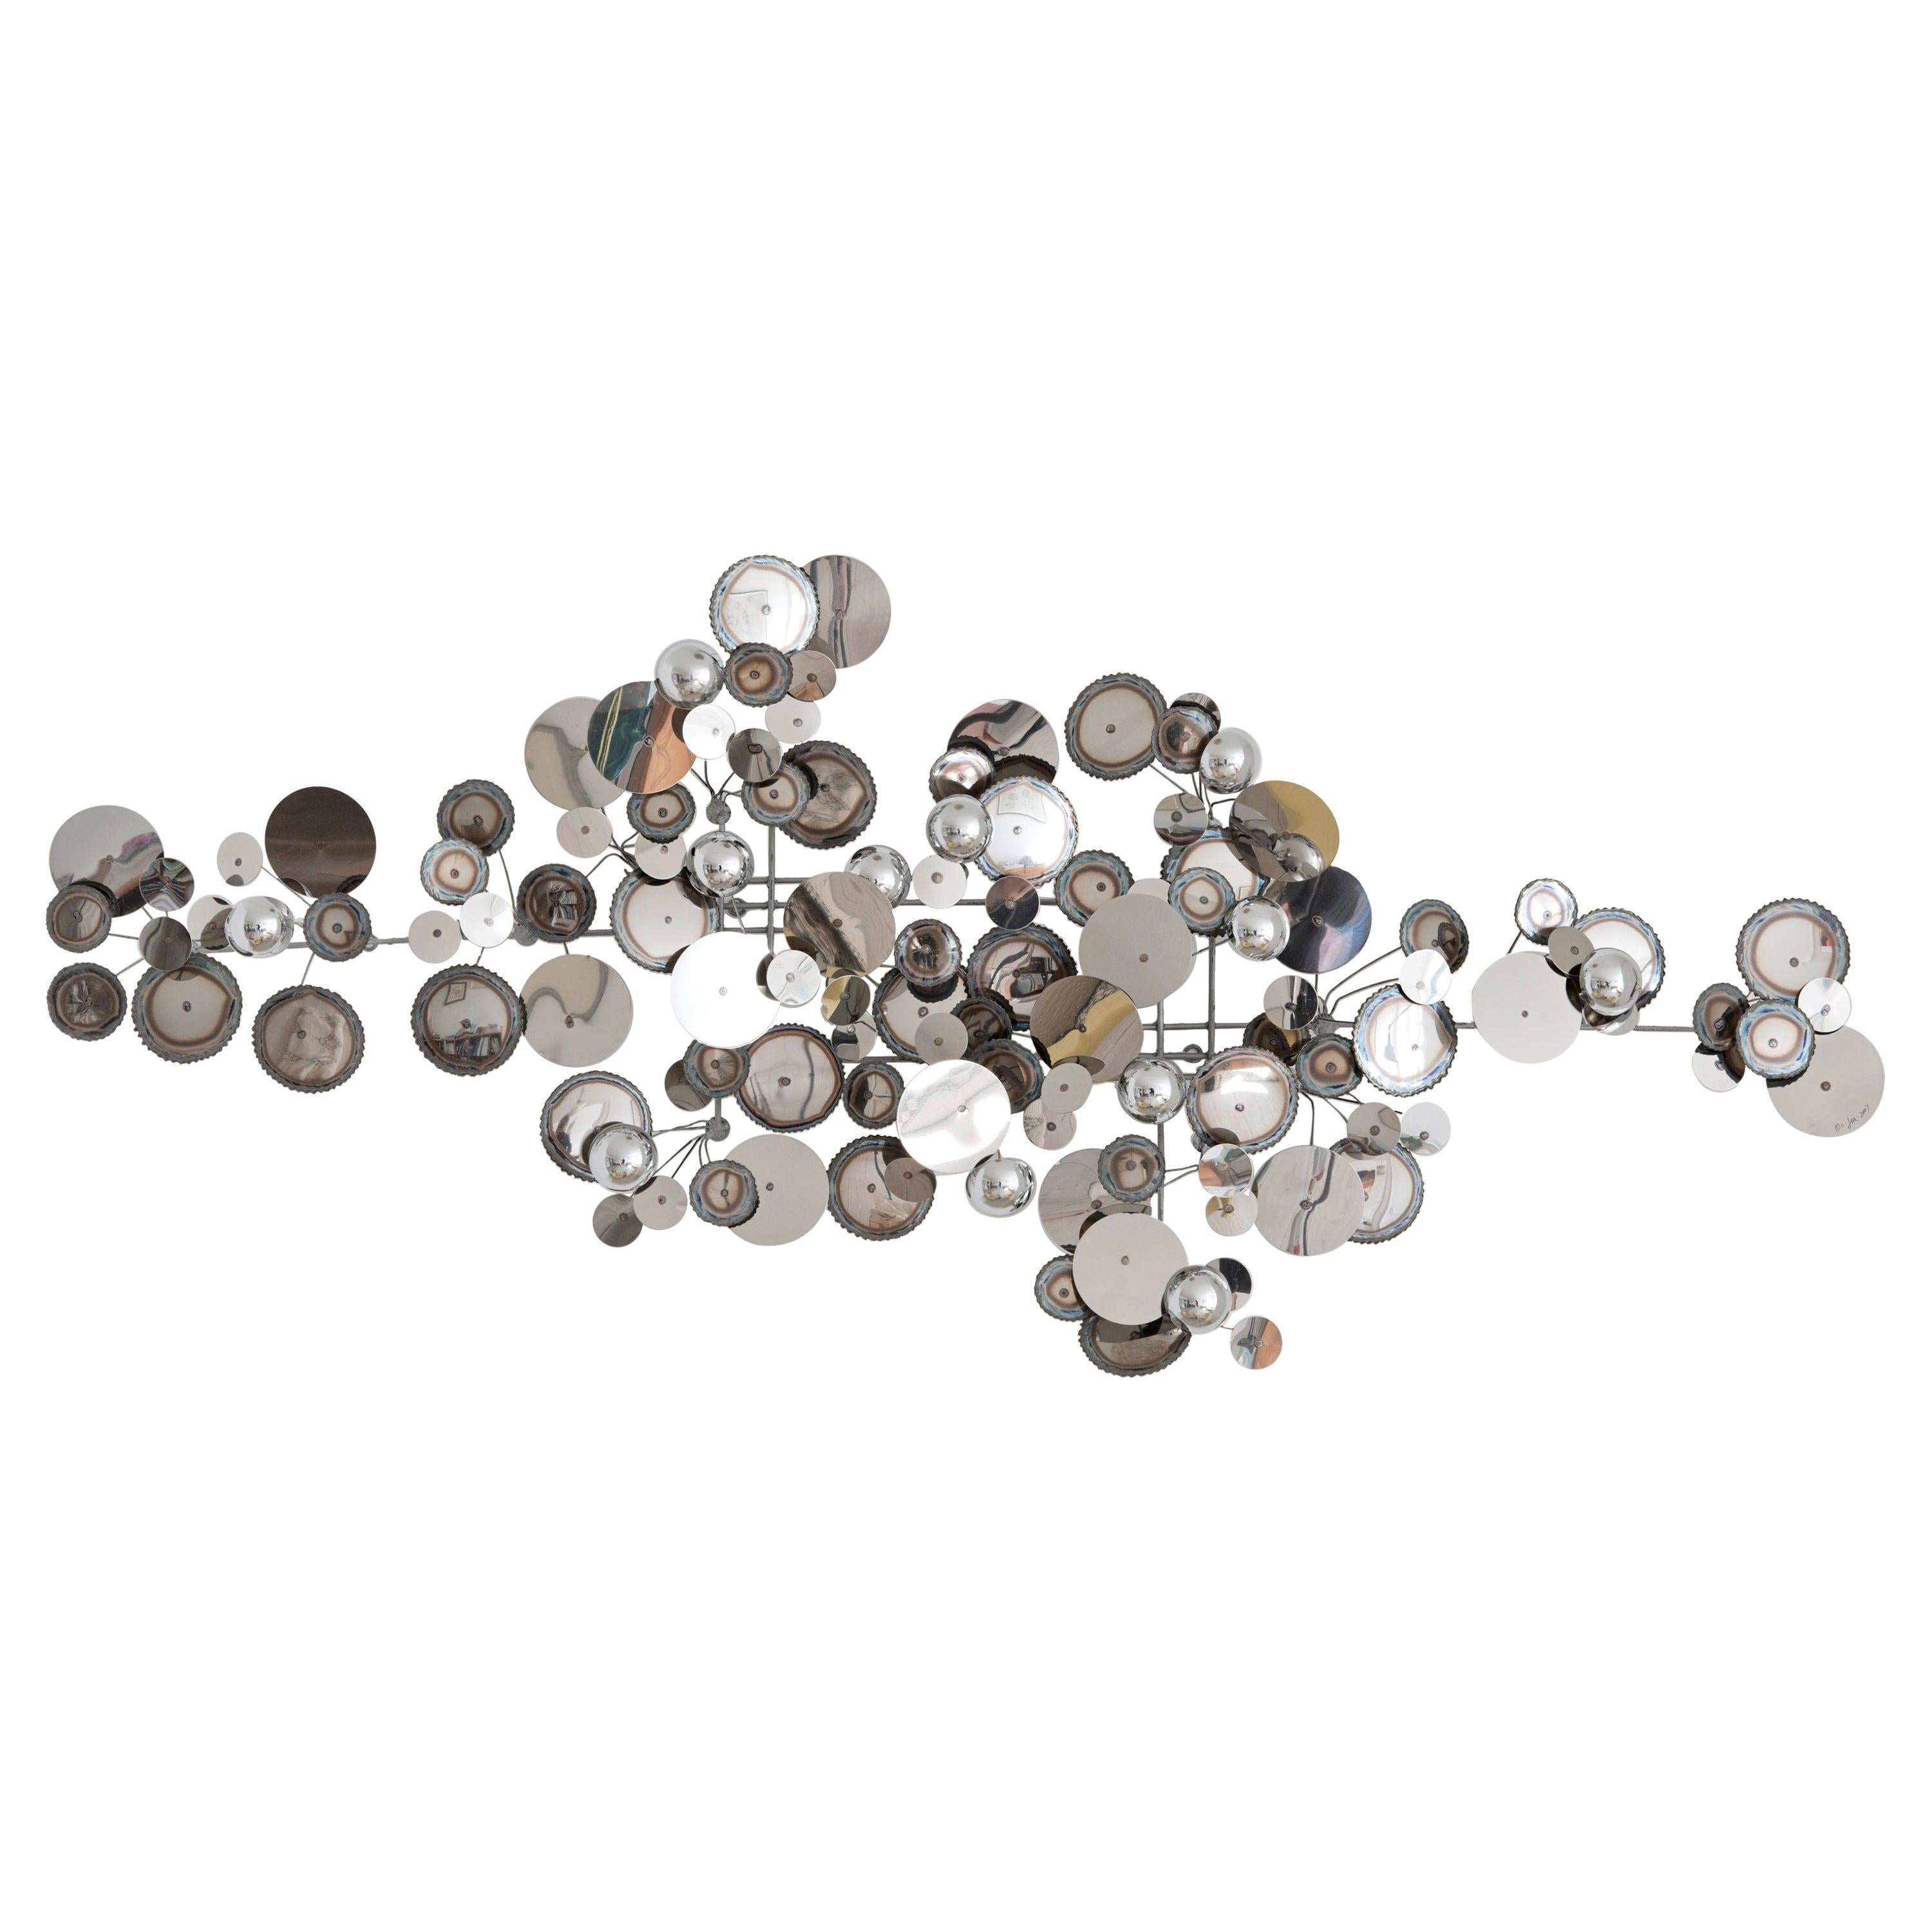 Contemporary Re-Edition Curtis Jere Raindrops Wall Sculpture in Chrome, USA